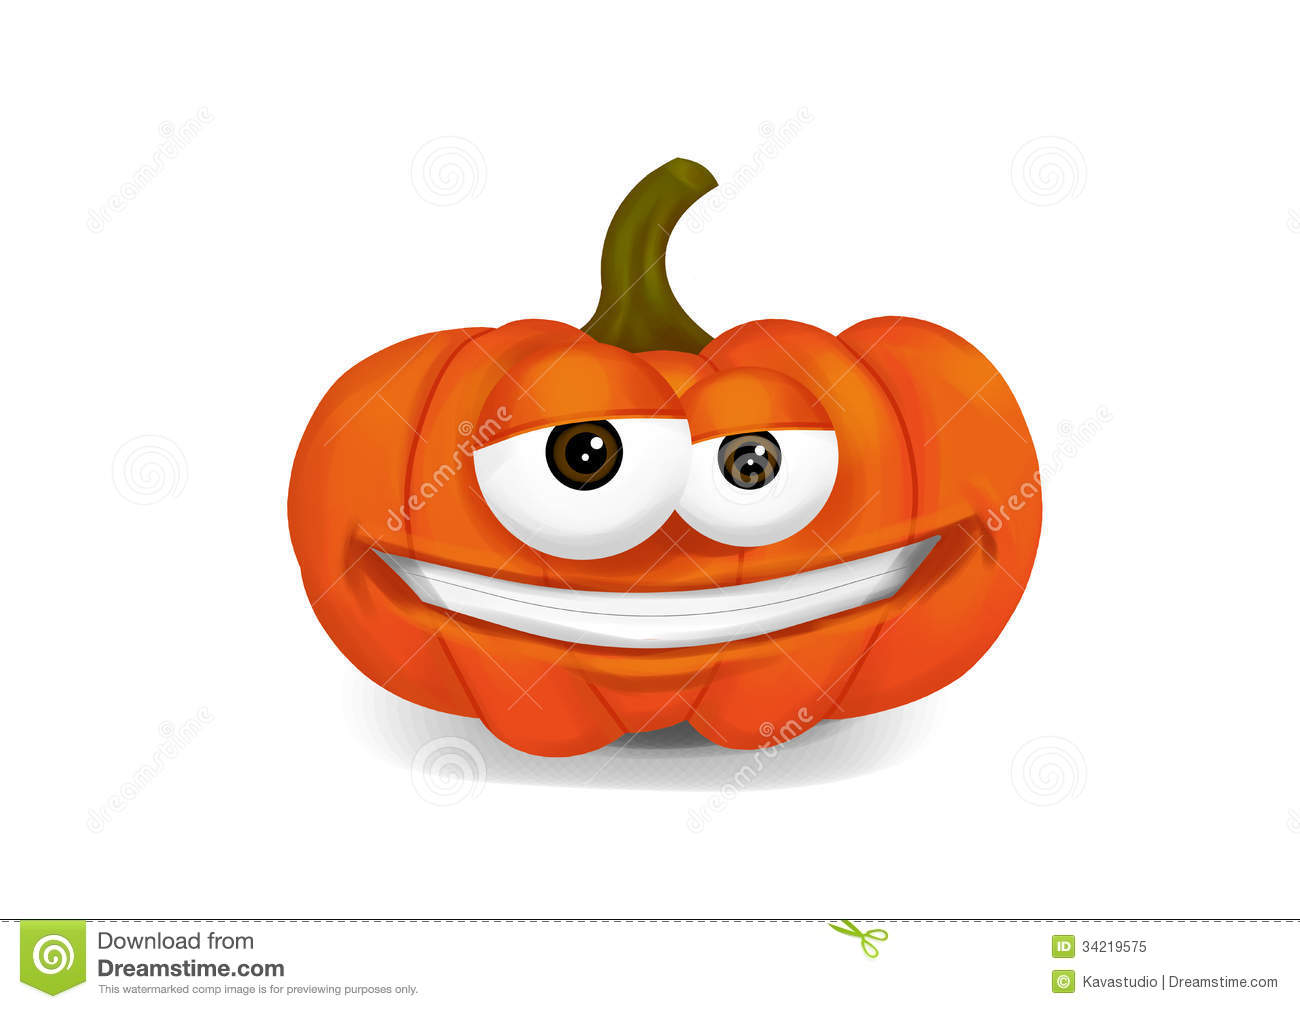 Cool pumpkin cartoon character smiling on a white background.